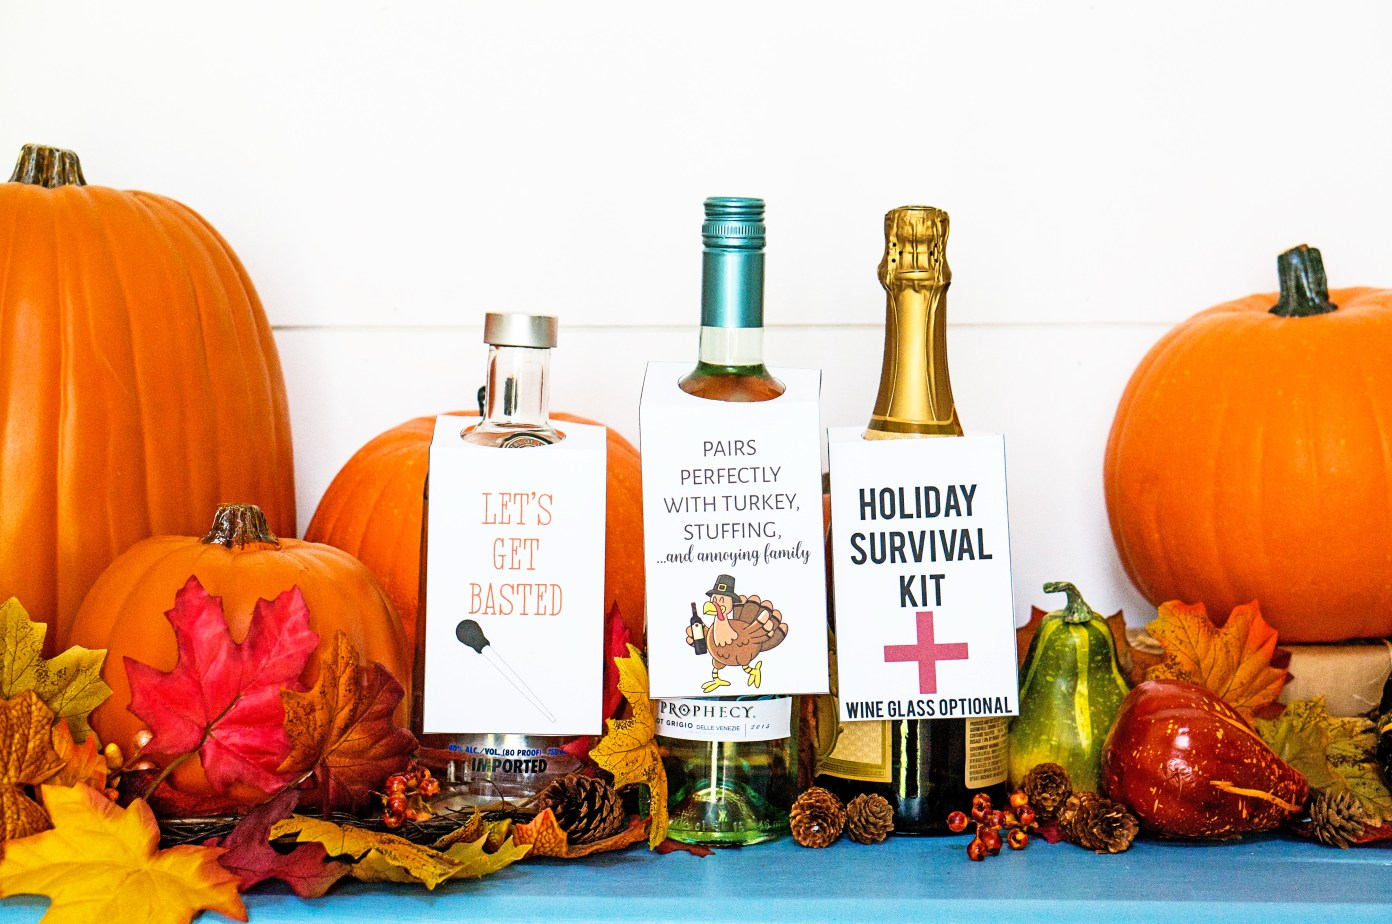 Thanksgiving Wine Labels. Part of Free Thanksgiving Printables Round-Up. Over 50 free Thanksgiving printables including decor, planners, labels, food decoration, and more! #thanksgiving #free #printable #freeprintable #thanksgivingprintable